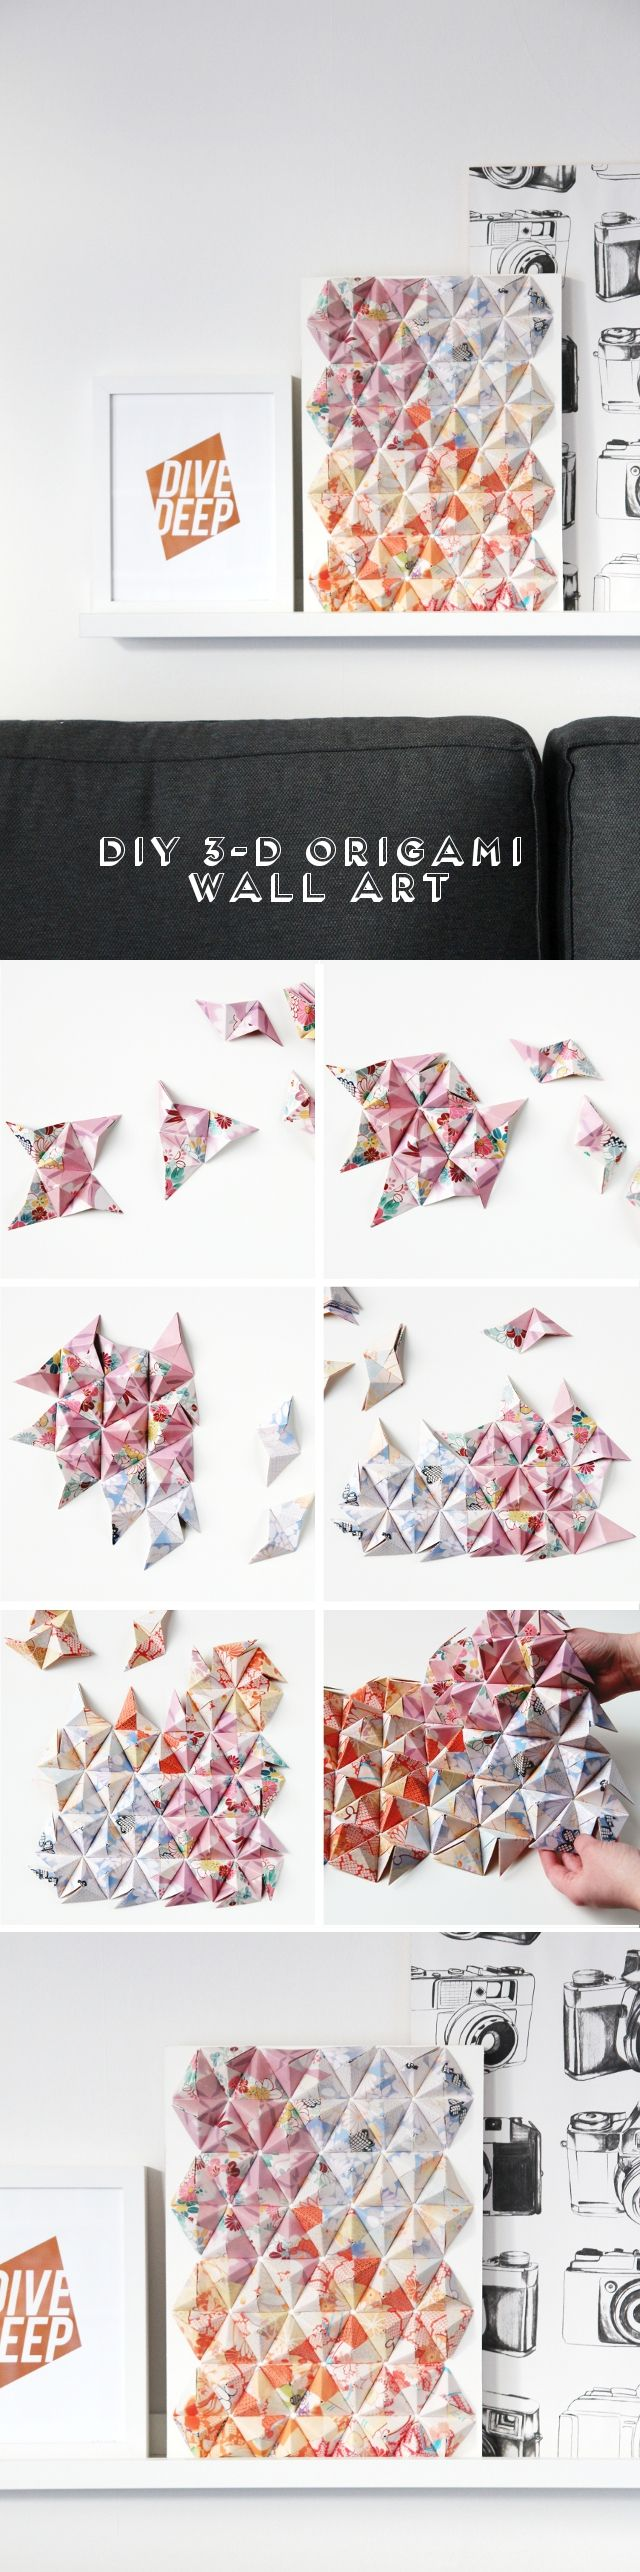 Diy 3D Origami Wall Art.                                                                                                                                                     More